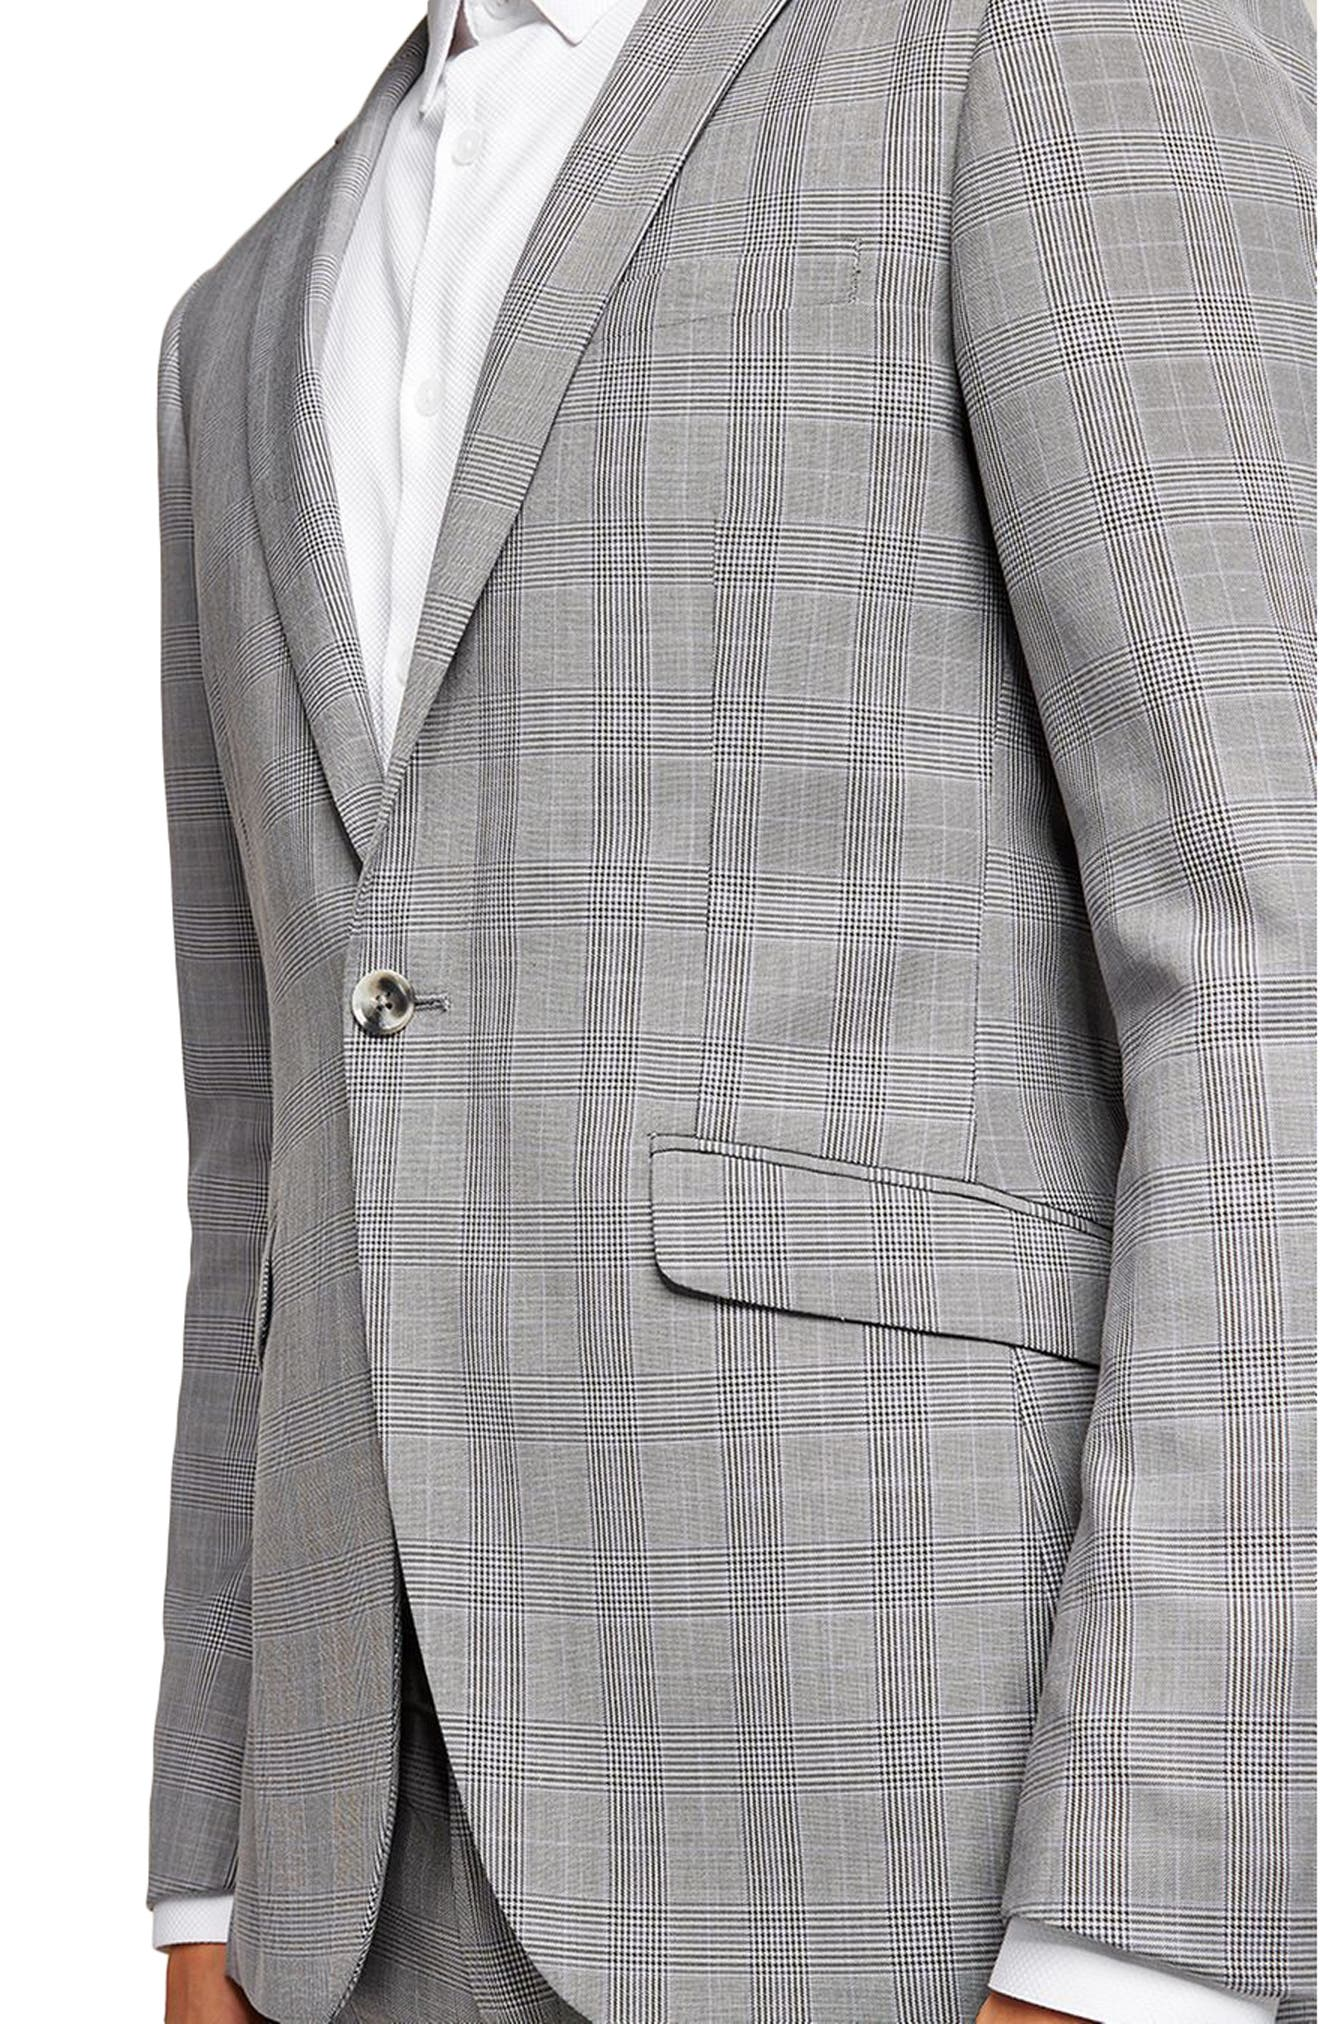 Skinny Fit Check Suit Jacket,                             Alternate thumbnail 3, color,                             Grey Multi